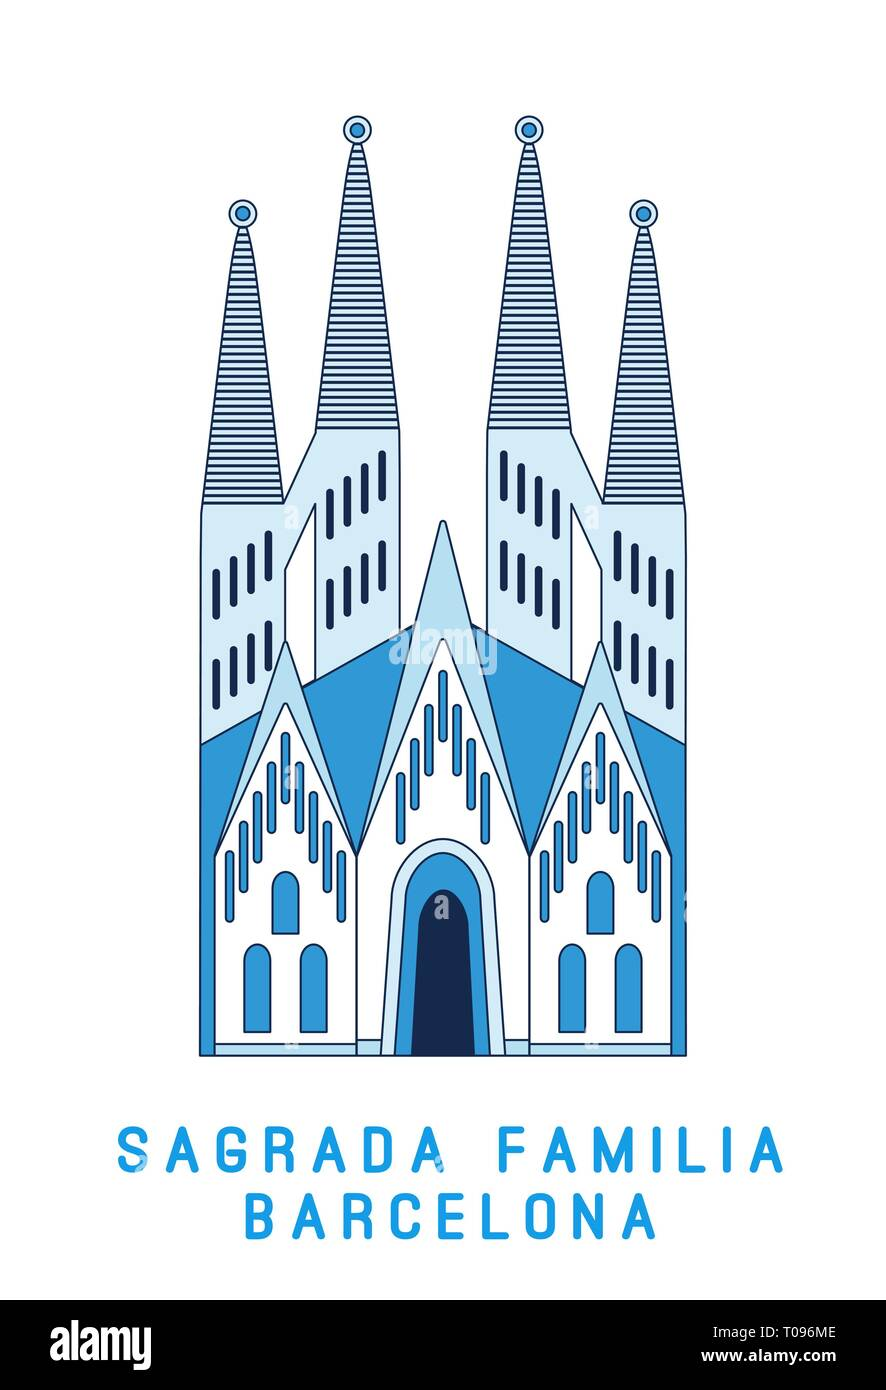 Line art Sagrada Familia Barcelona, famous Spain cathedral, vector illustration in flat style. - Stock Image